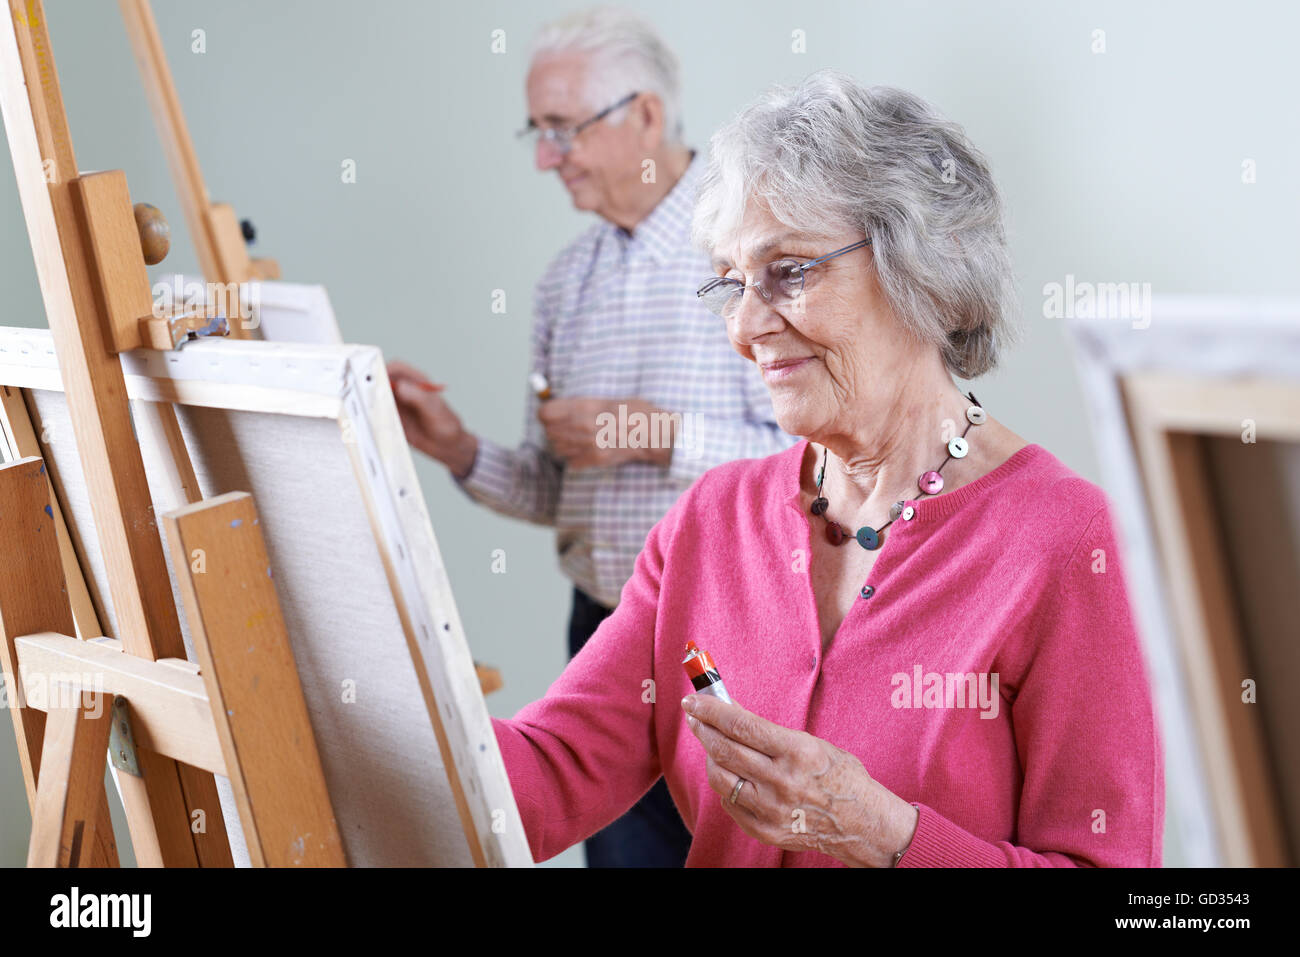 Seniors Attending Painting Class Together - Stock Image